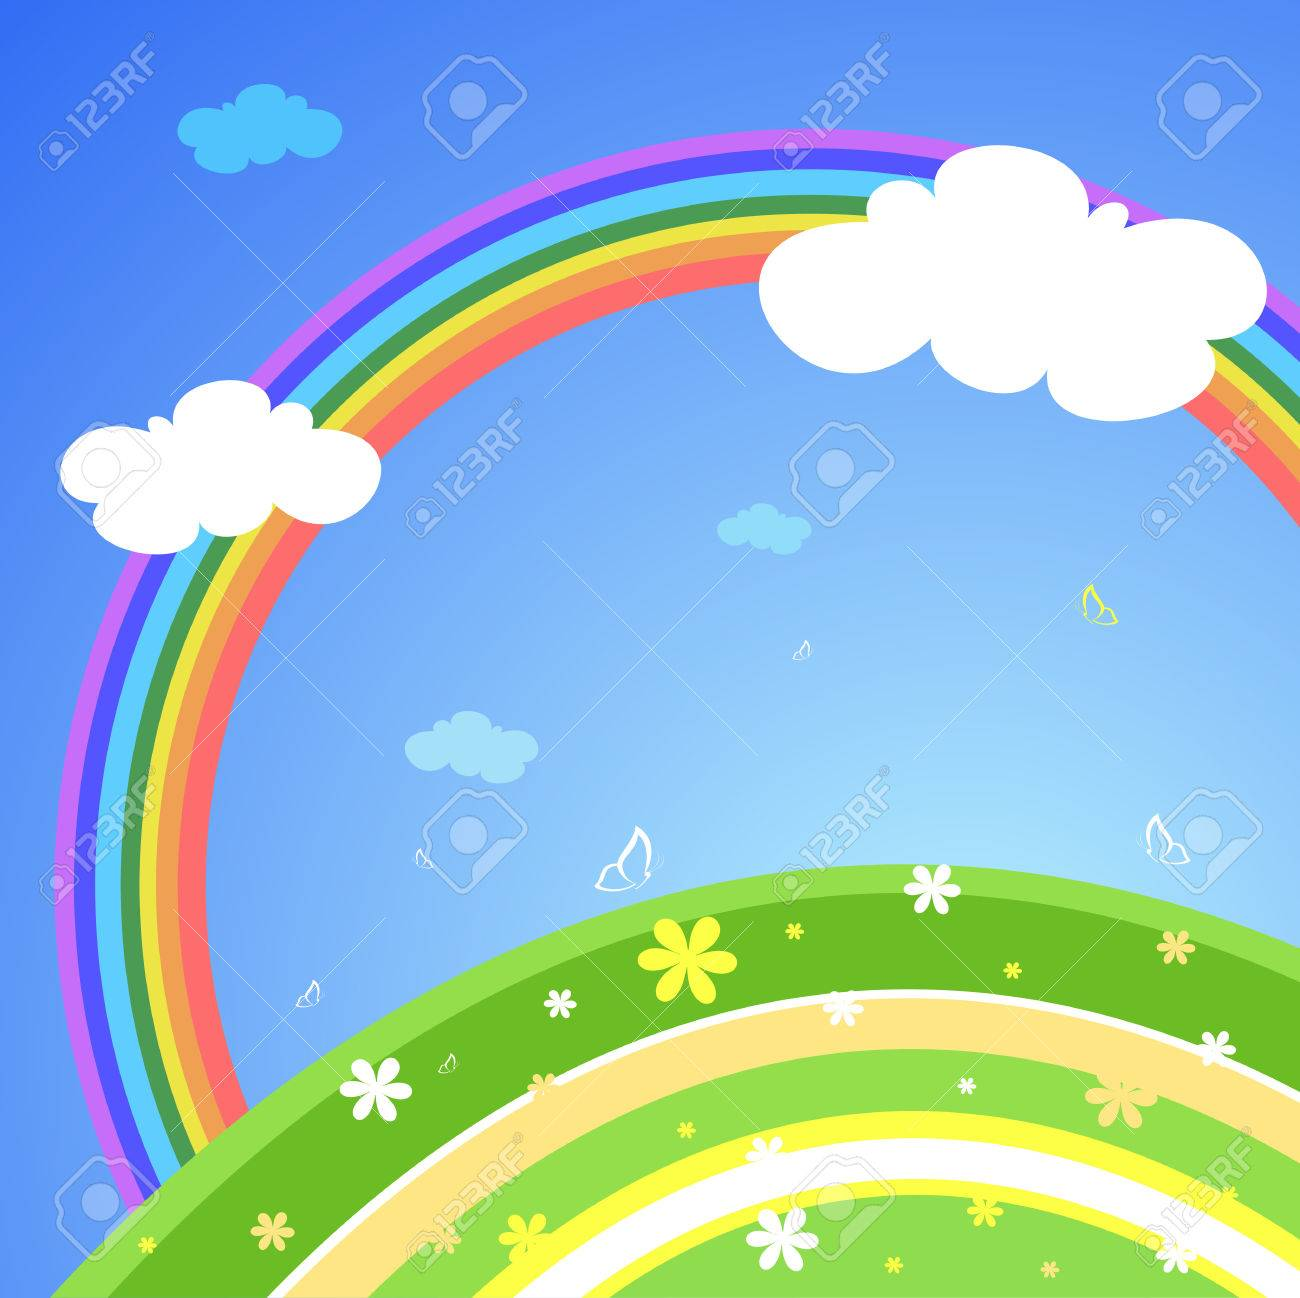 Abstract lanscape with rainbow, vector illustration Stock Vector - 5779826